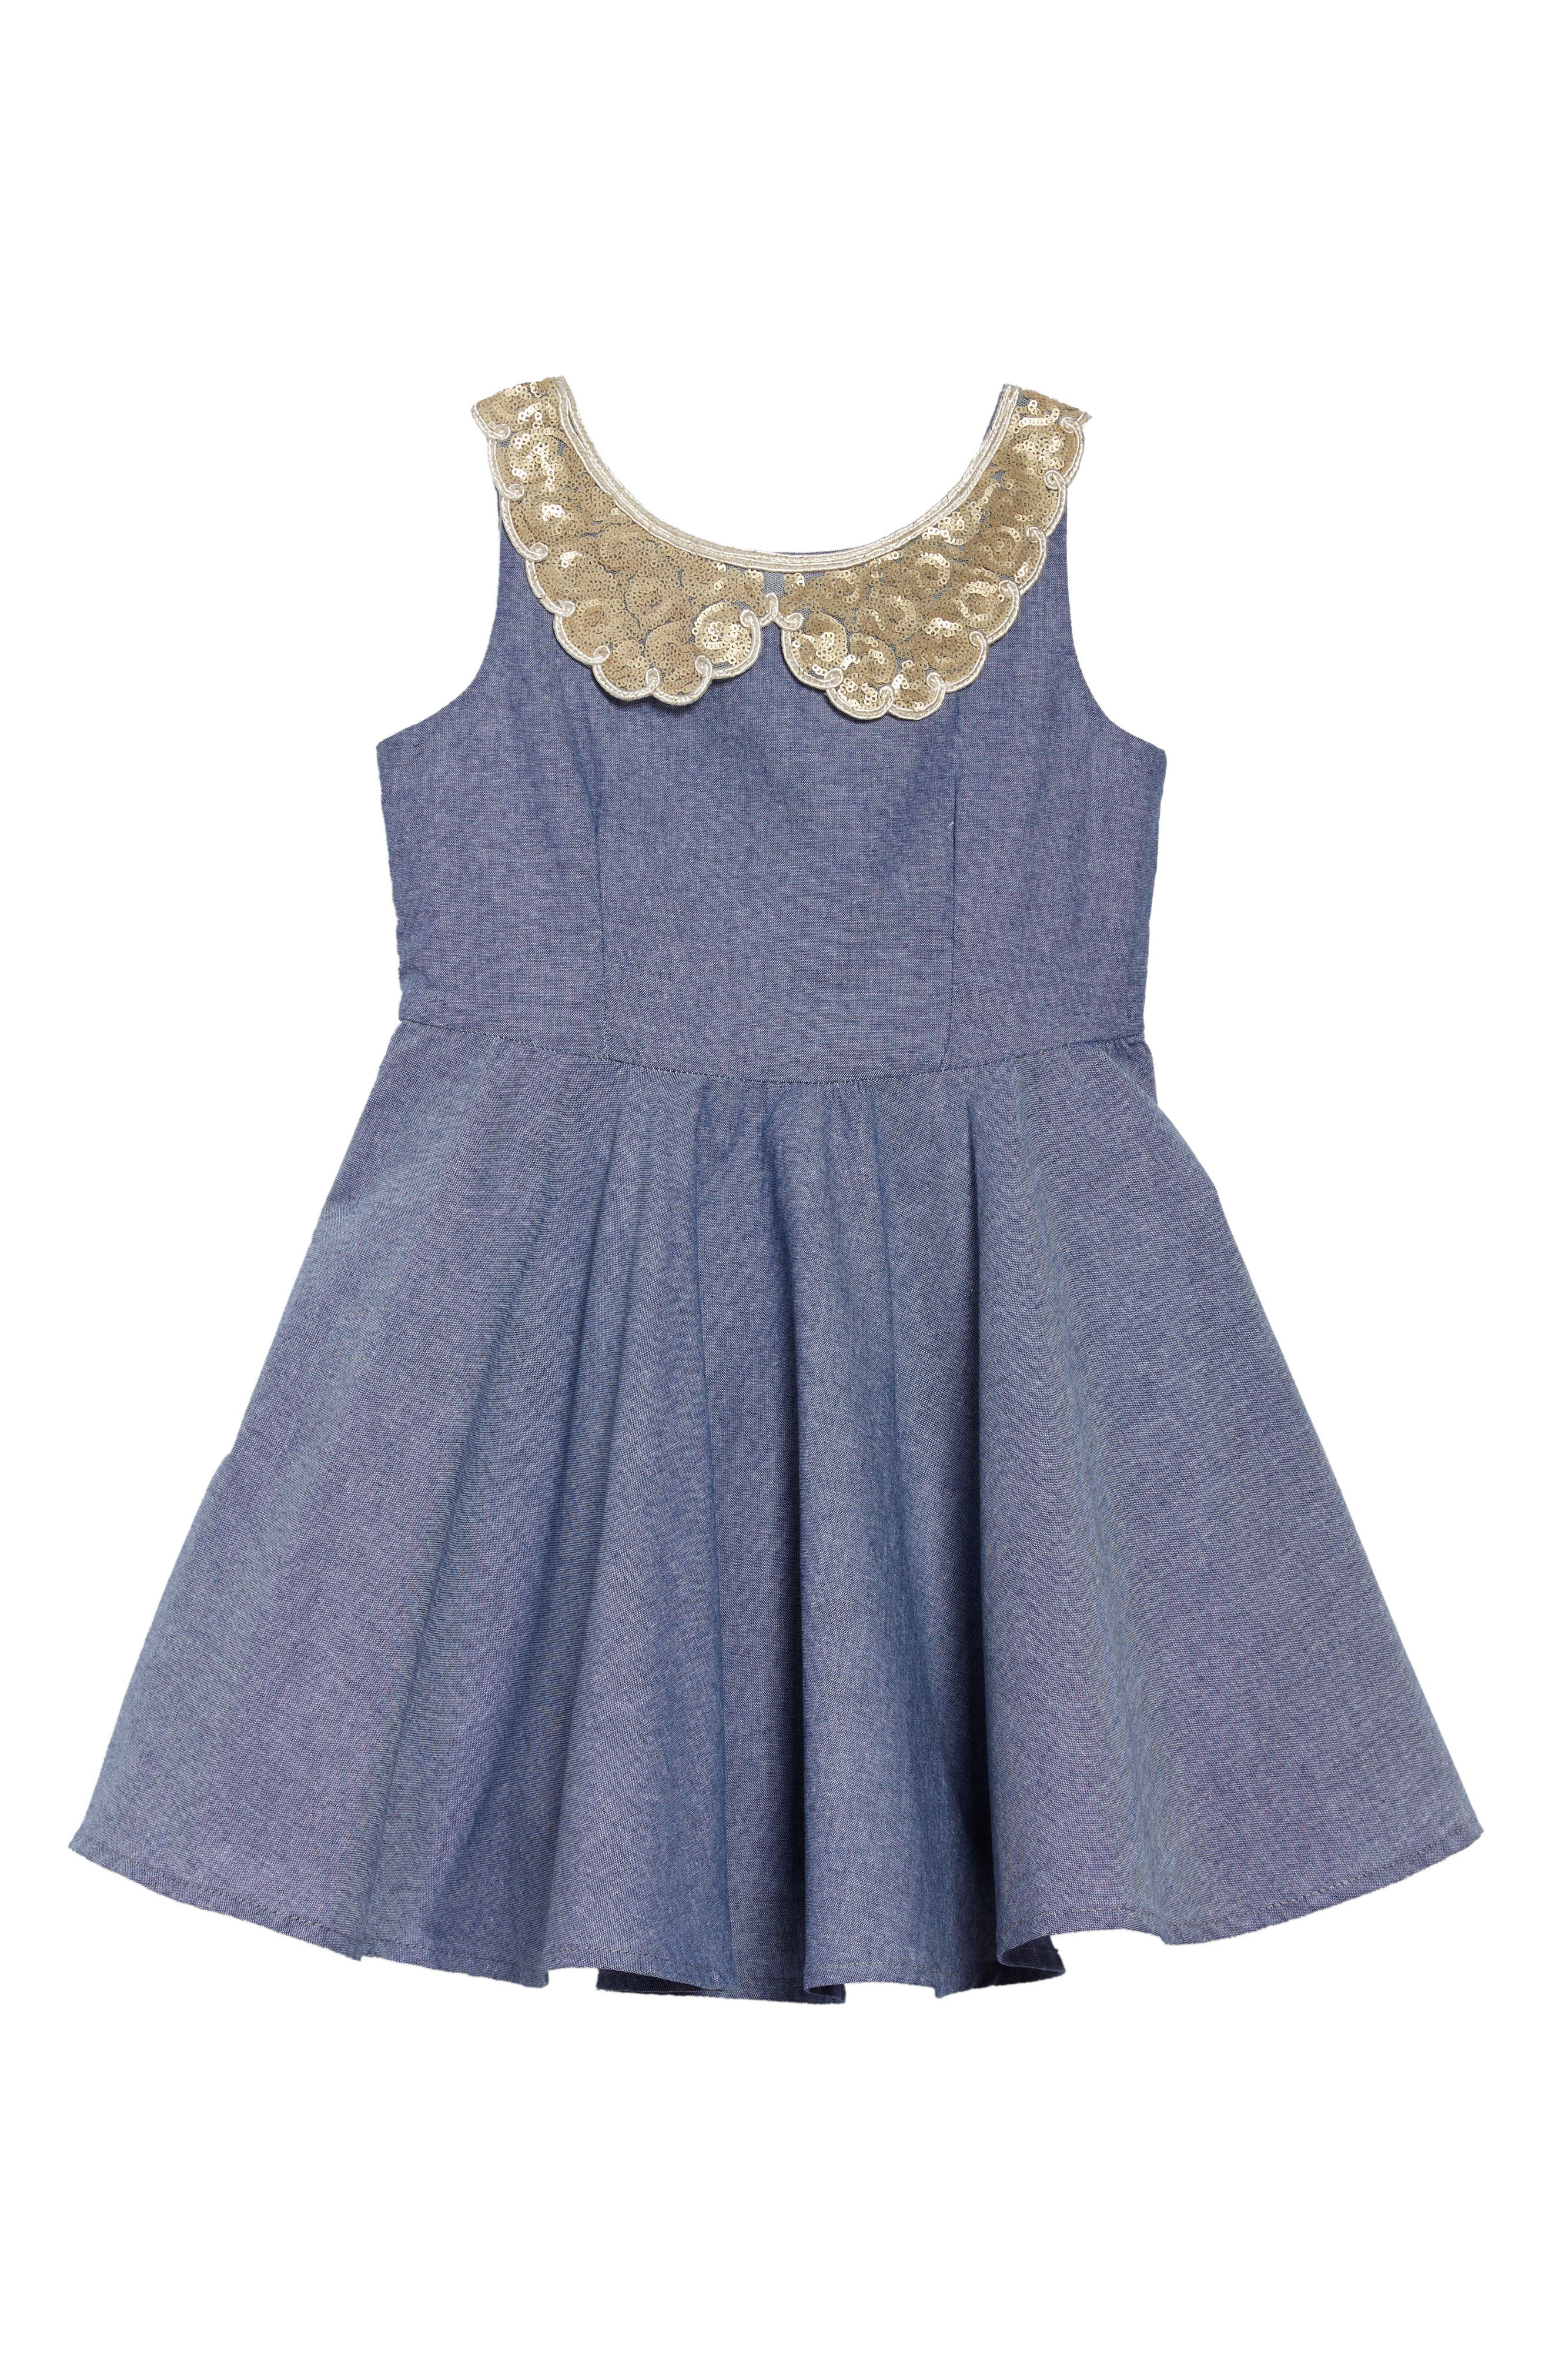 Fiveloaves Twofish Darcy Chambray Dress (Toddler Girls, Little Girls & Big Girls)